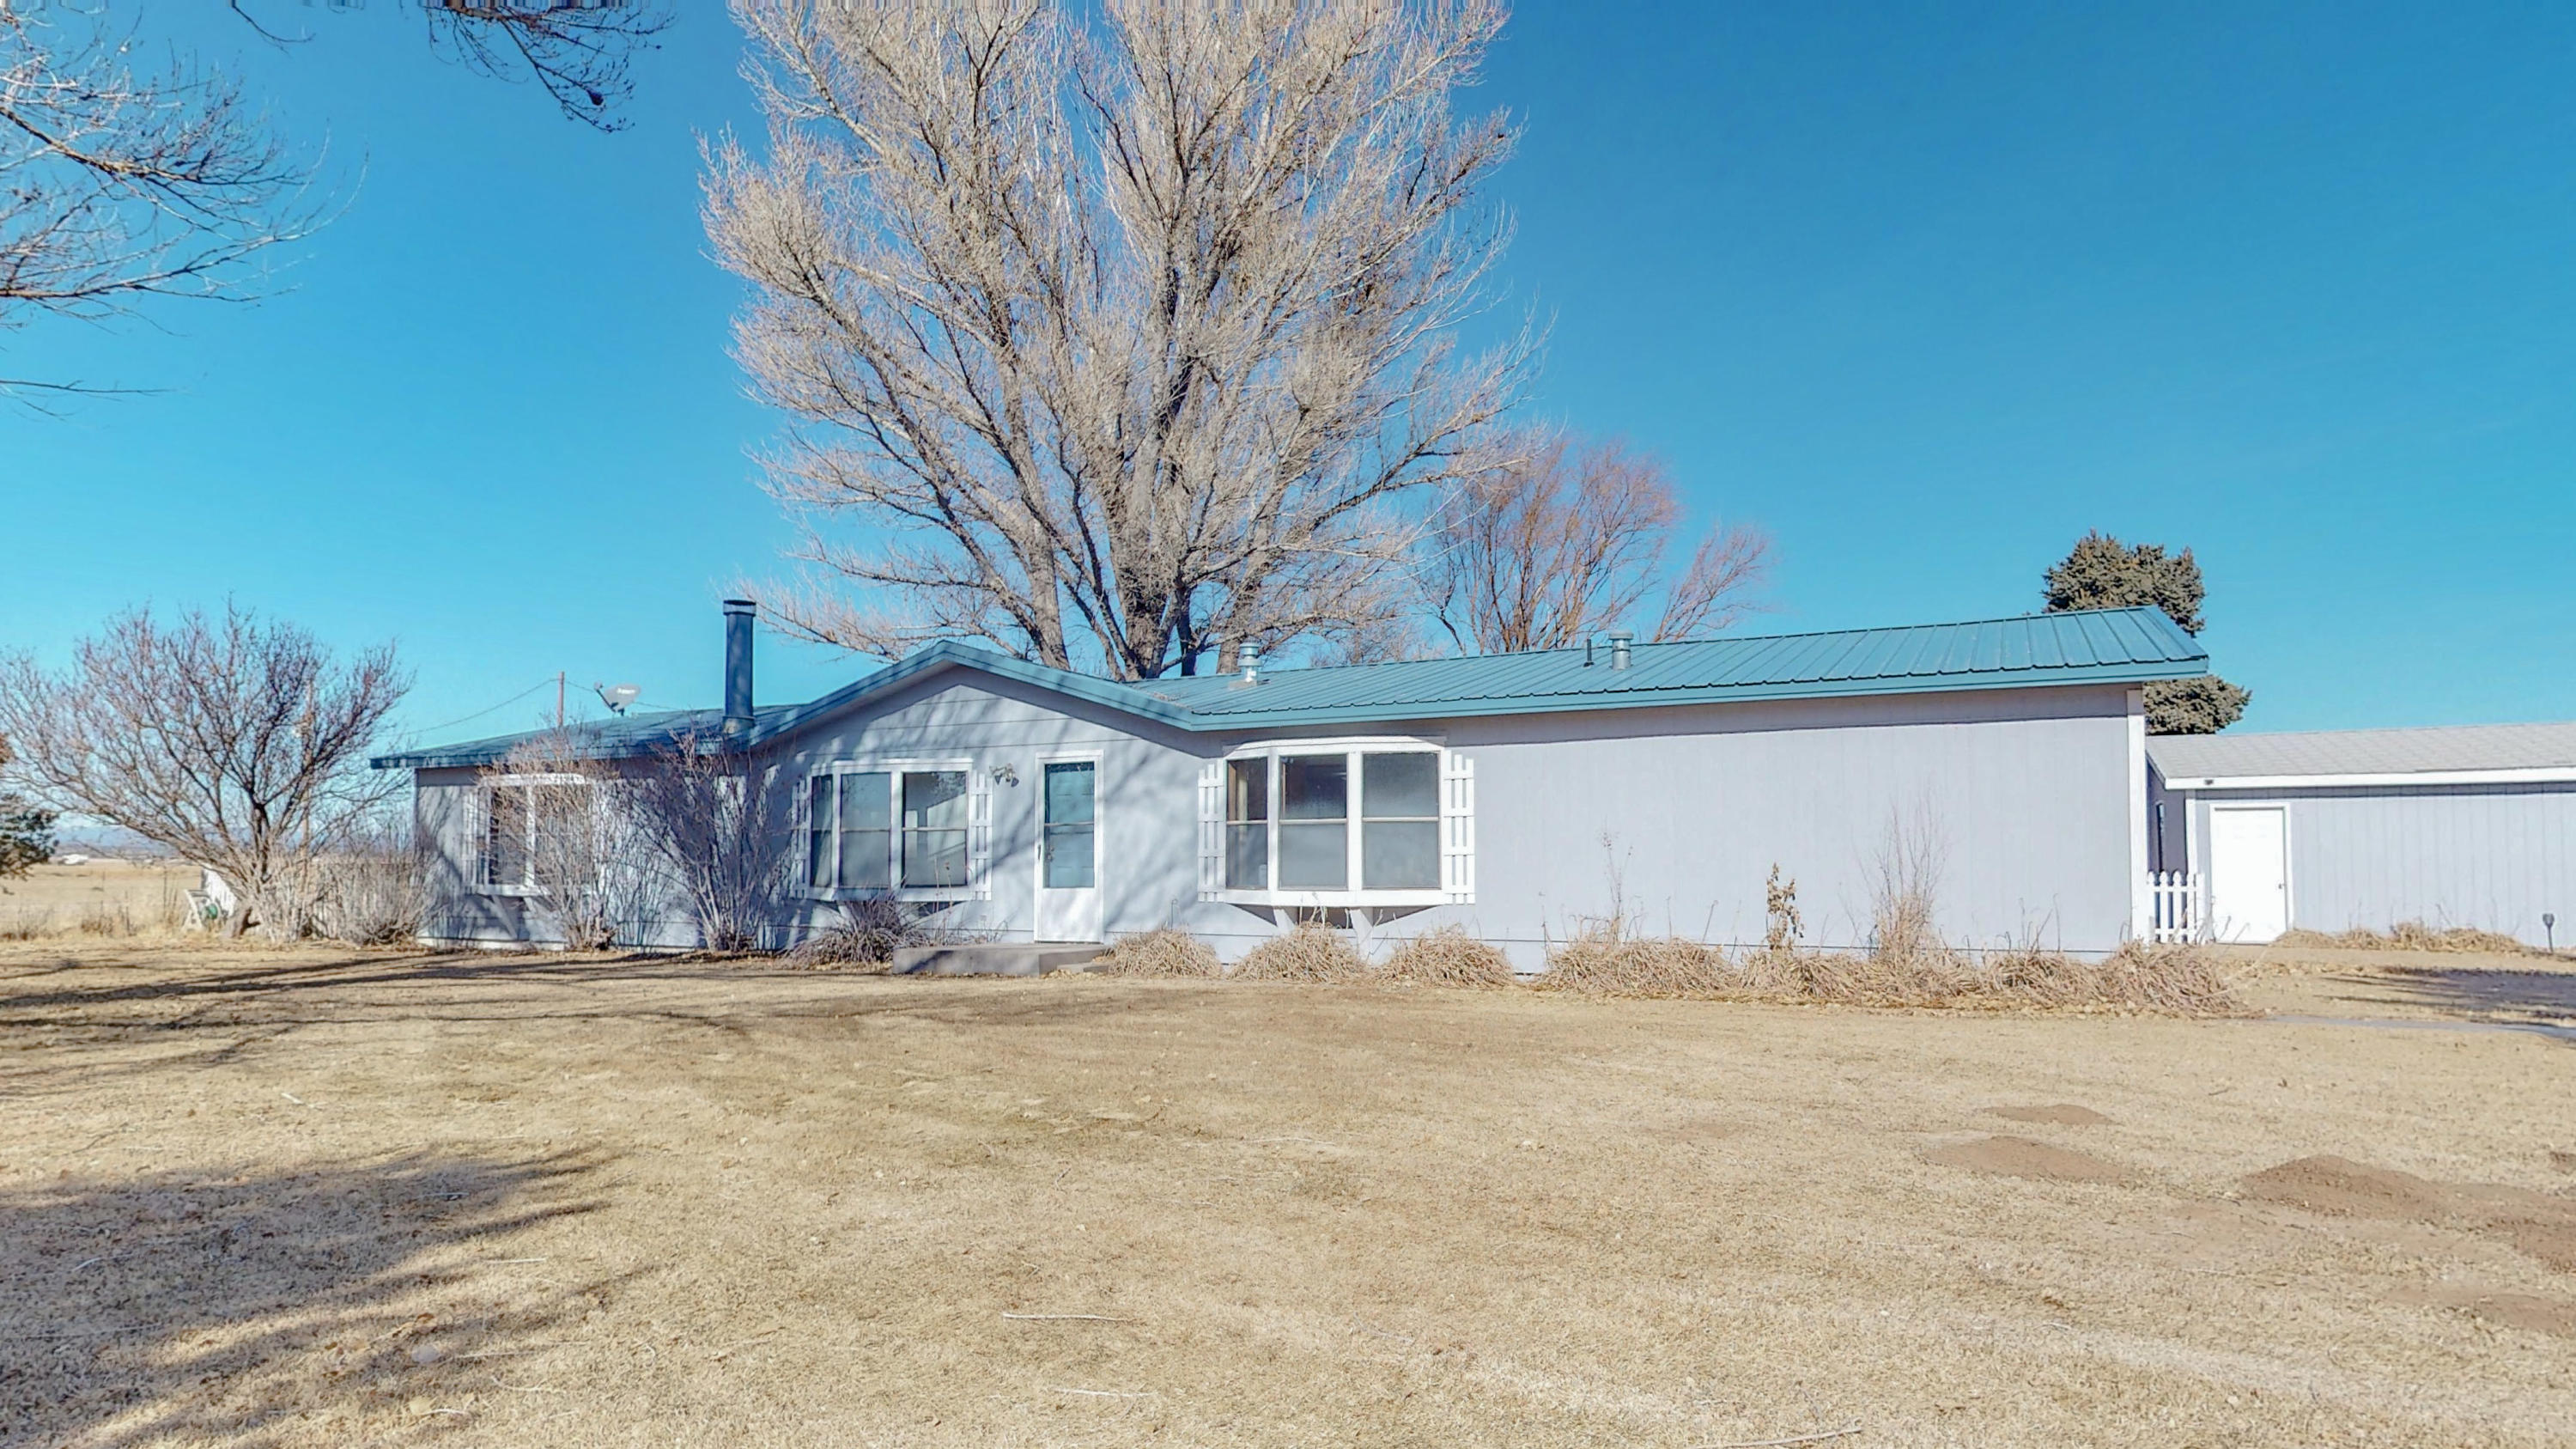 Live, work, play and be safe. Beautiful 35 acres with gorgeous views and a very nice doublewide. Please see virtual tour and pictures. There is a horse barn, work shop and small office building that needs repairs.Domestic well on the property.Frontage on Hwy  41 zoned commercial.